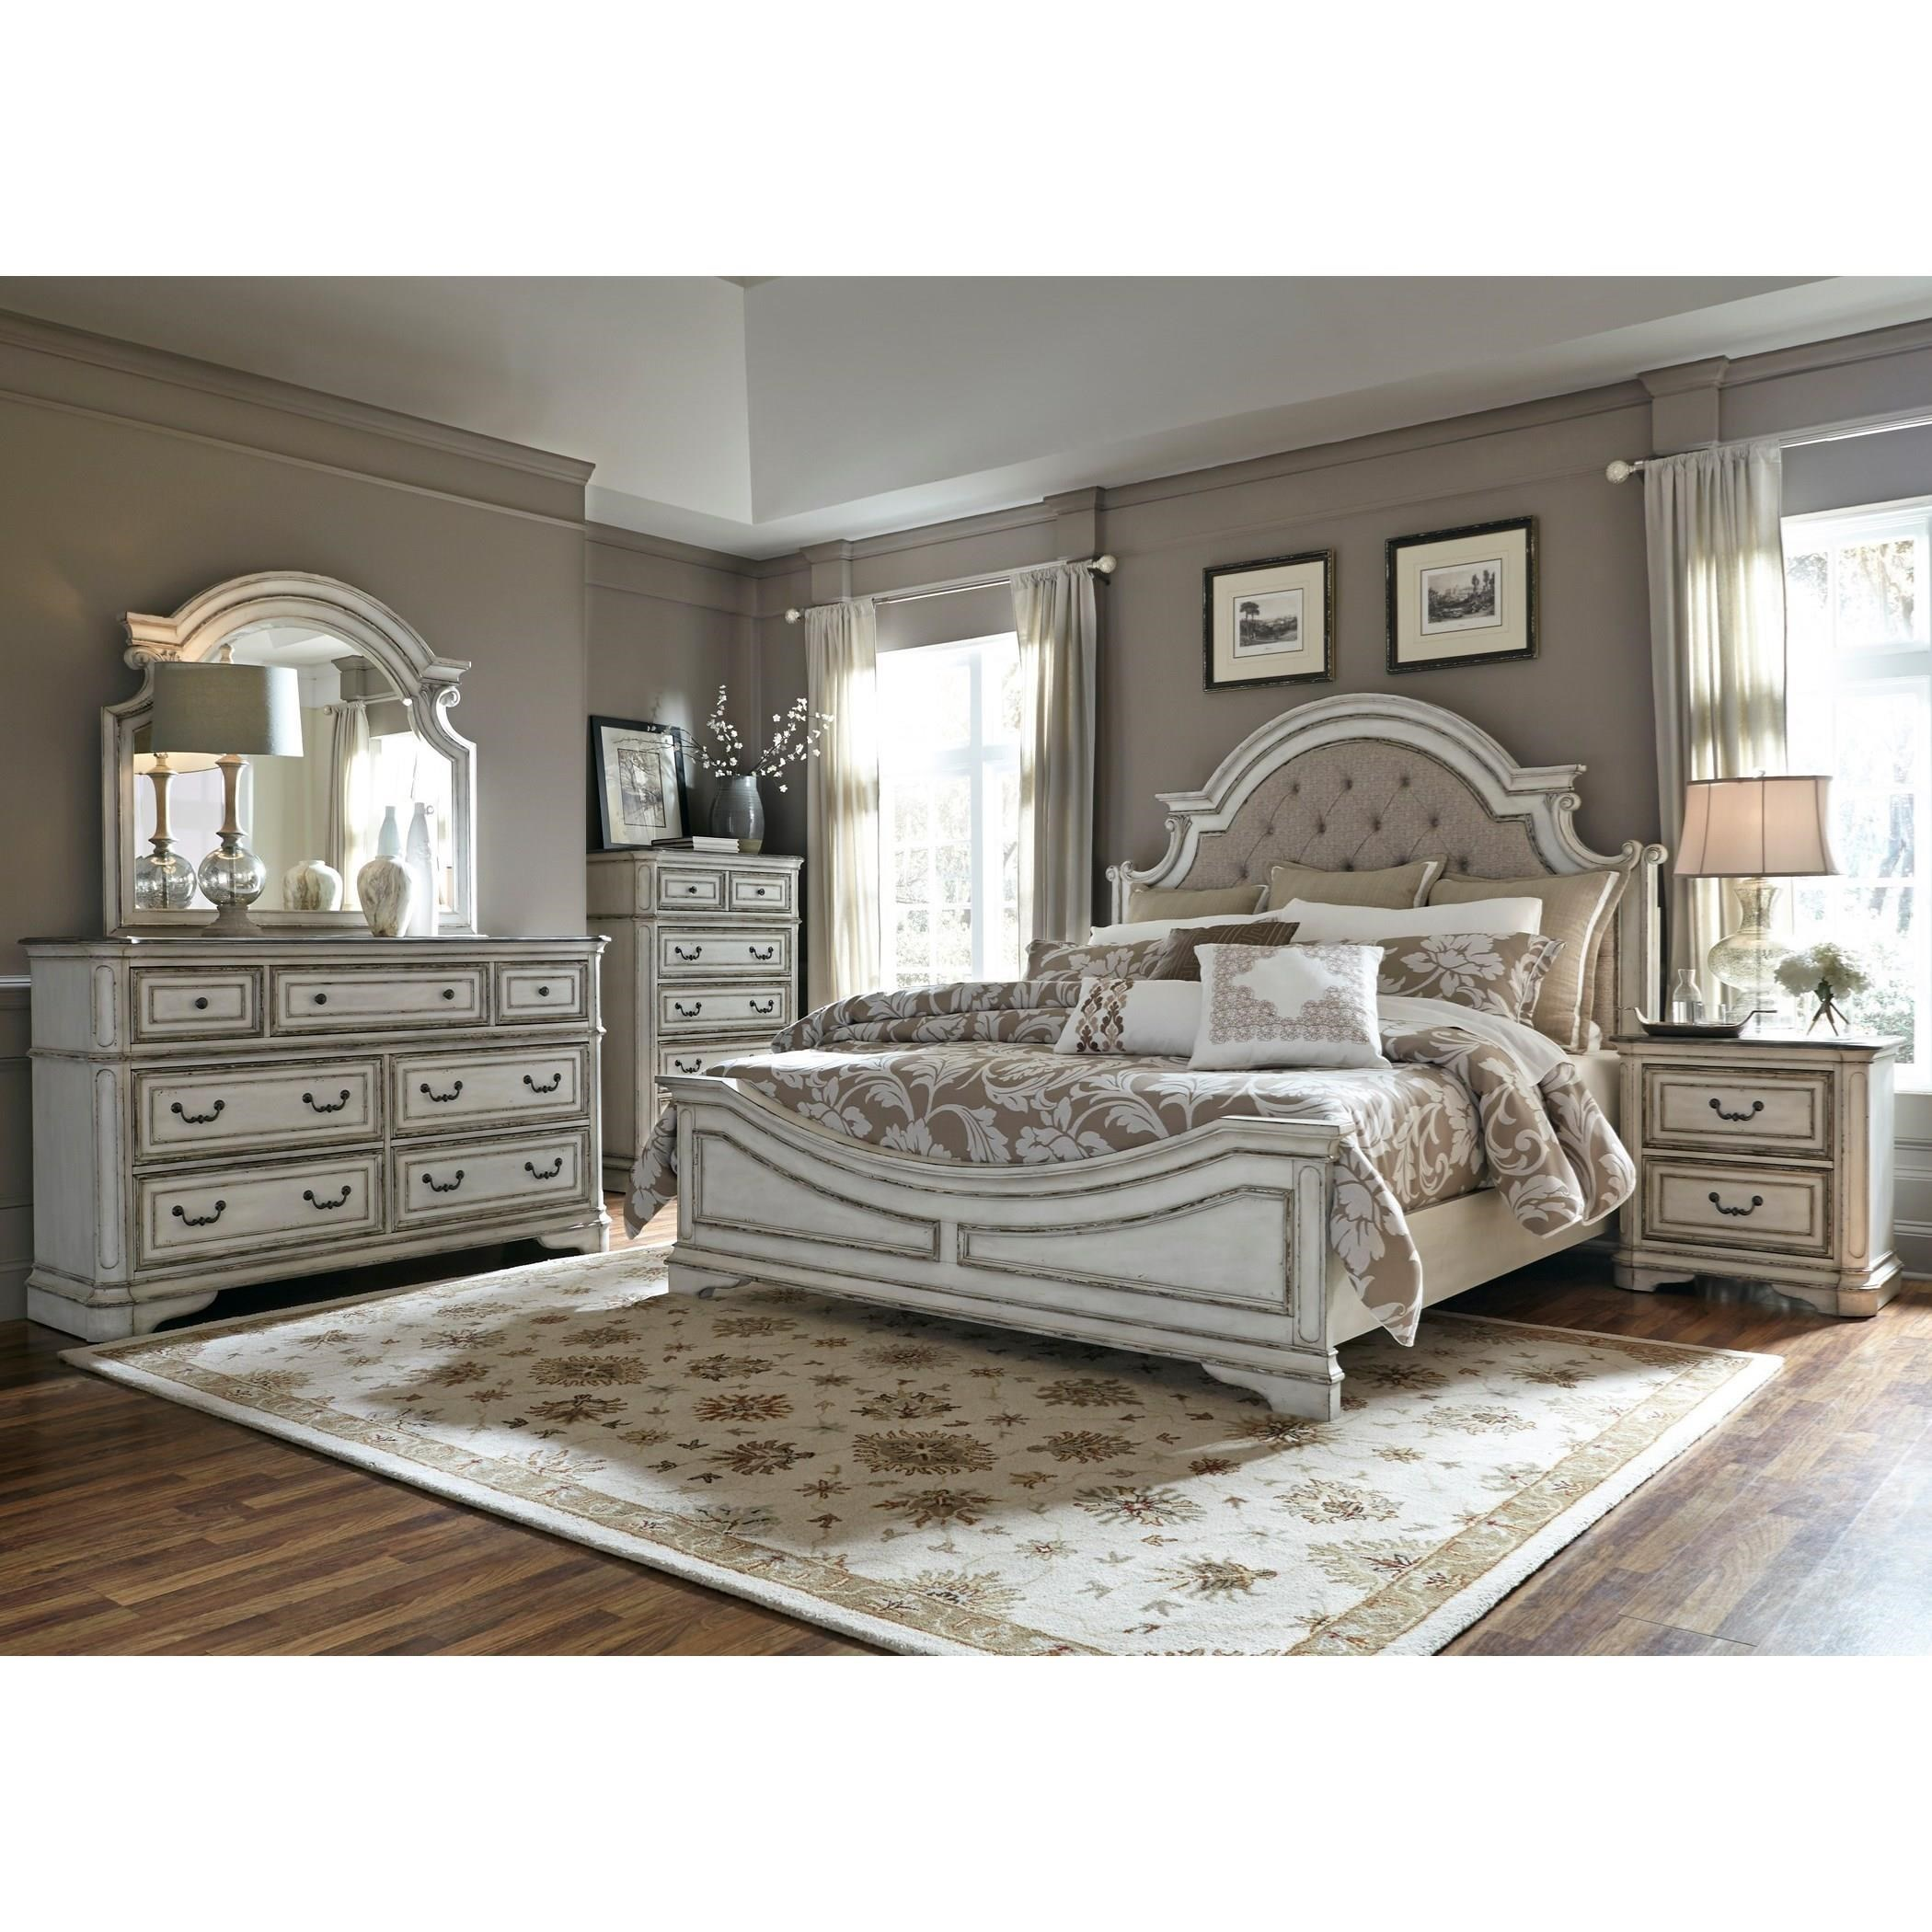 Liberty Furniture Magnolia Manor Libe Grp 244 Kingsuite King Upholstered Bed Dresser Mirror